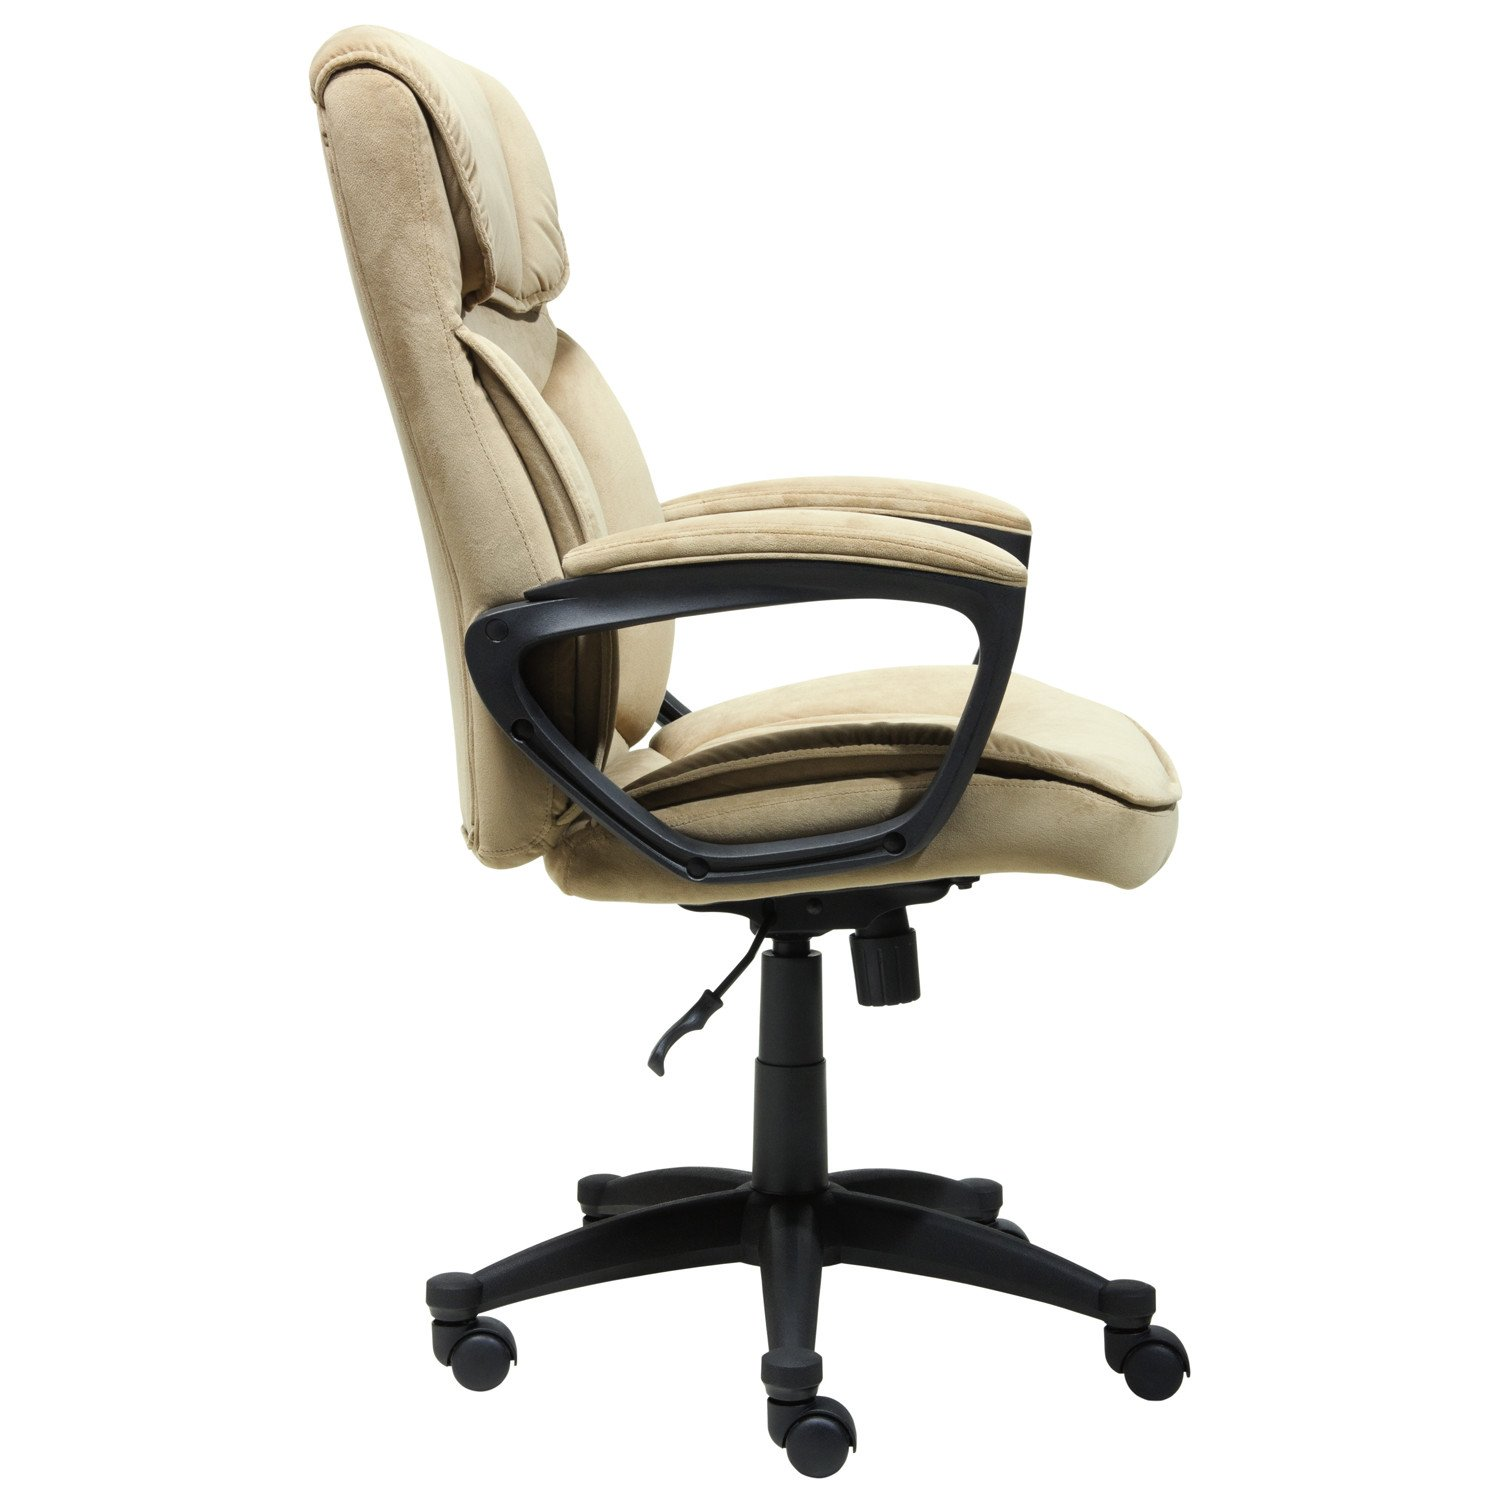 serta cheap kibaz chairs aeron desk office home sealy fabulous wid santana brown miller chair executive hei herman design upholstered furniture base posturepedic tulsa leather